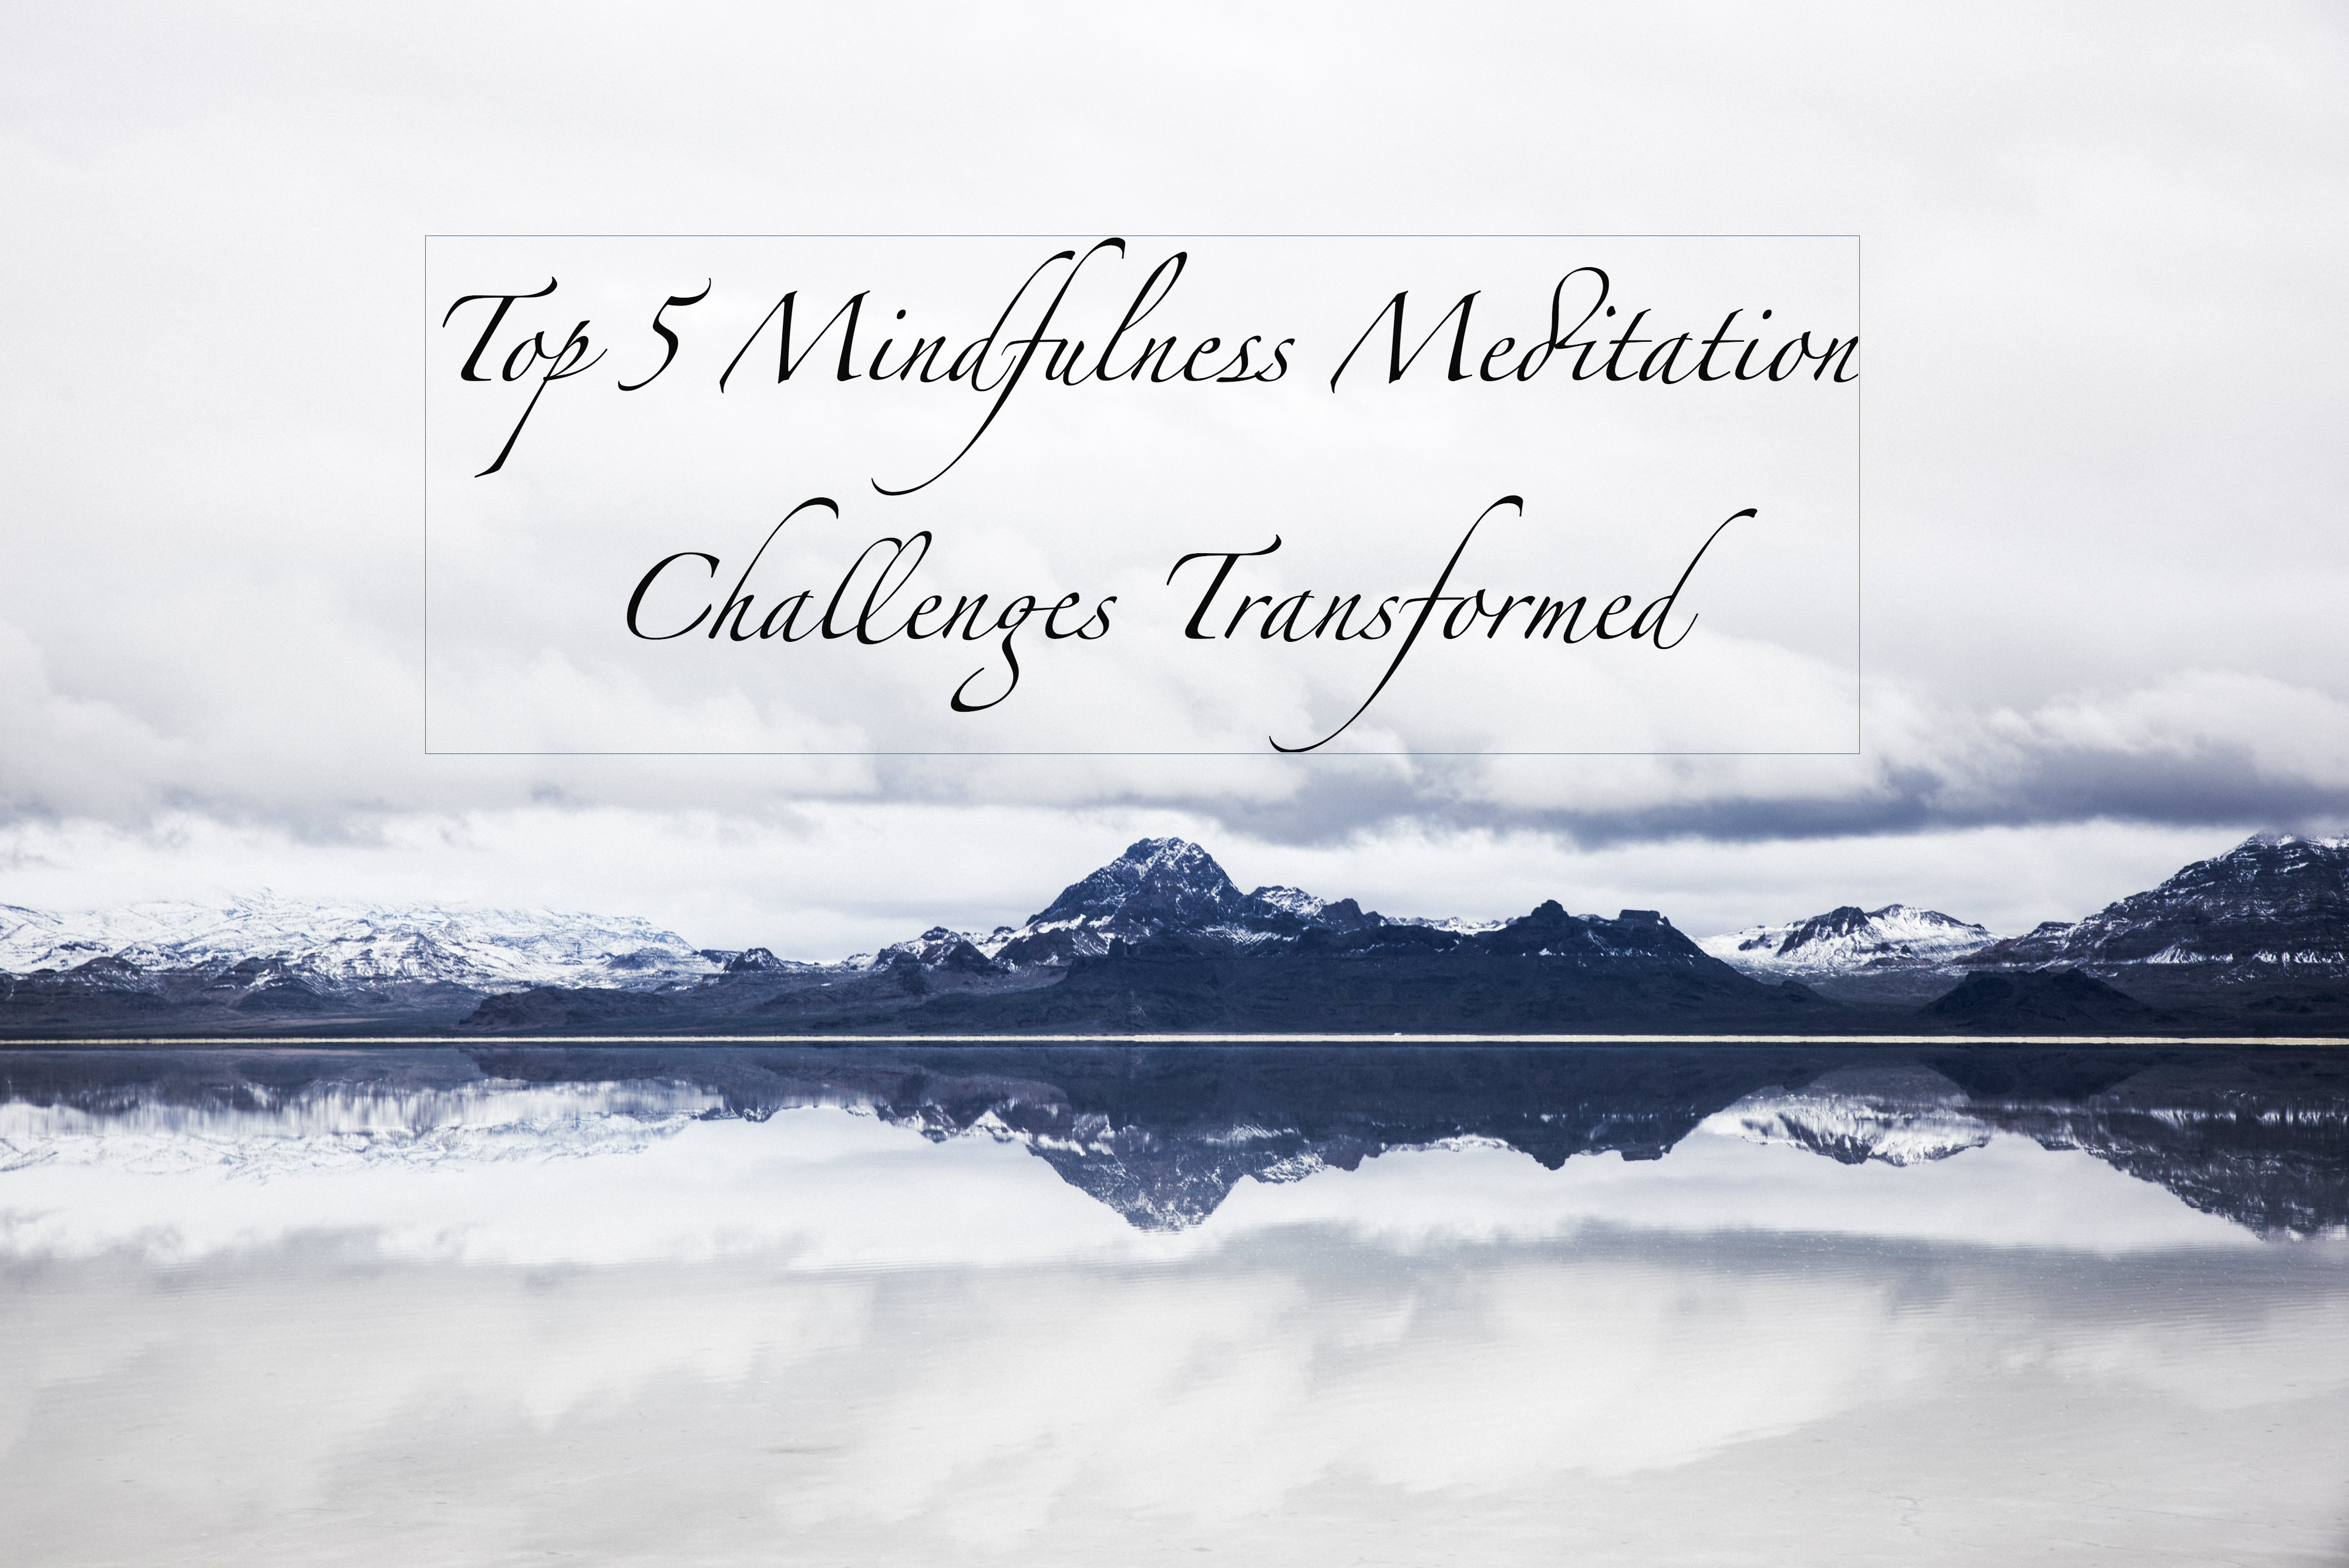 Snowy mountain and horizon reflected in still lake with black text overlaying: Top 5 Mindfulness Meditation Challenges Transformed